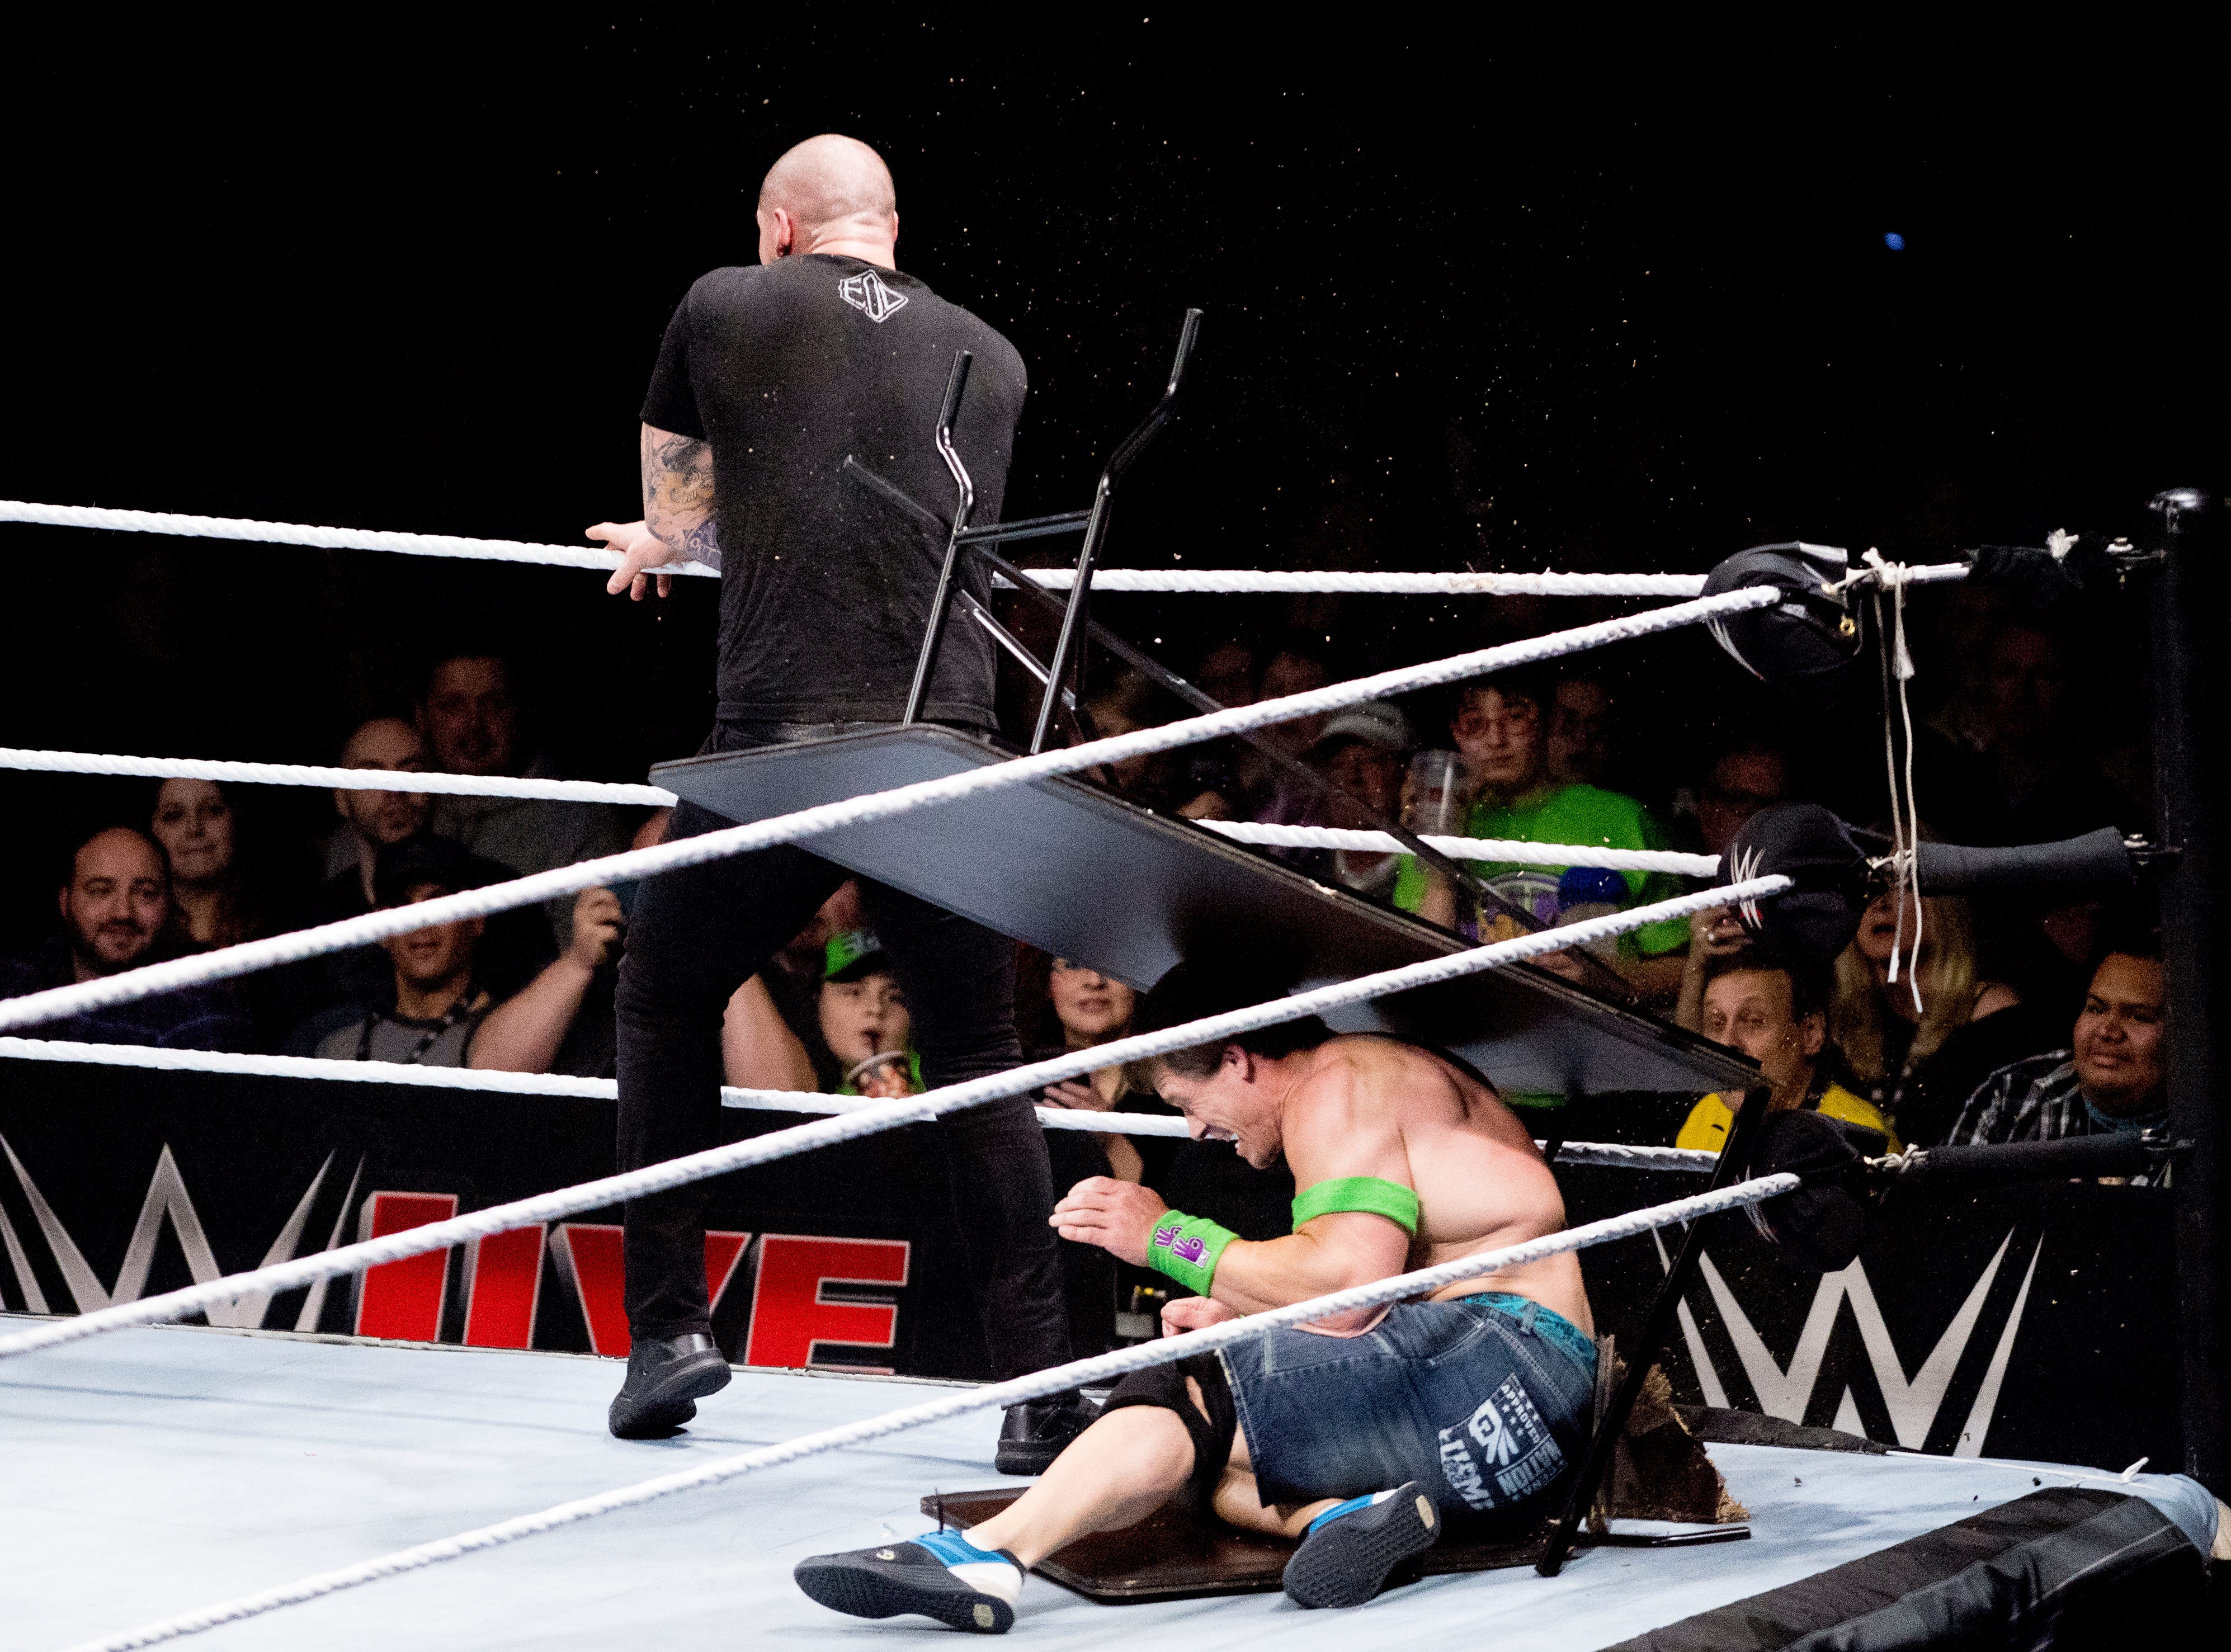 Baron Corbin throws John Cena into a table during a WWE Live performance at the Knoxville Civic Coliseum in Knoxville, Tennessee on Saturday, January 12, 2019. *KNOXVILLE NEWS SENTINEL USE ONLY*